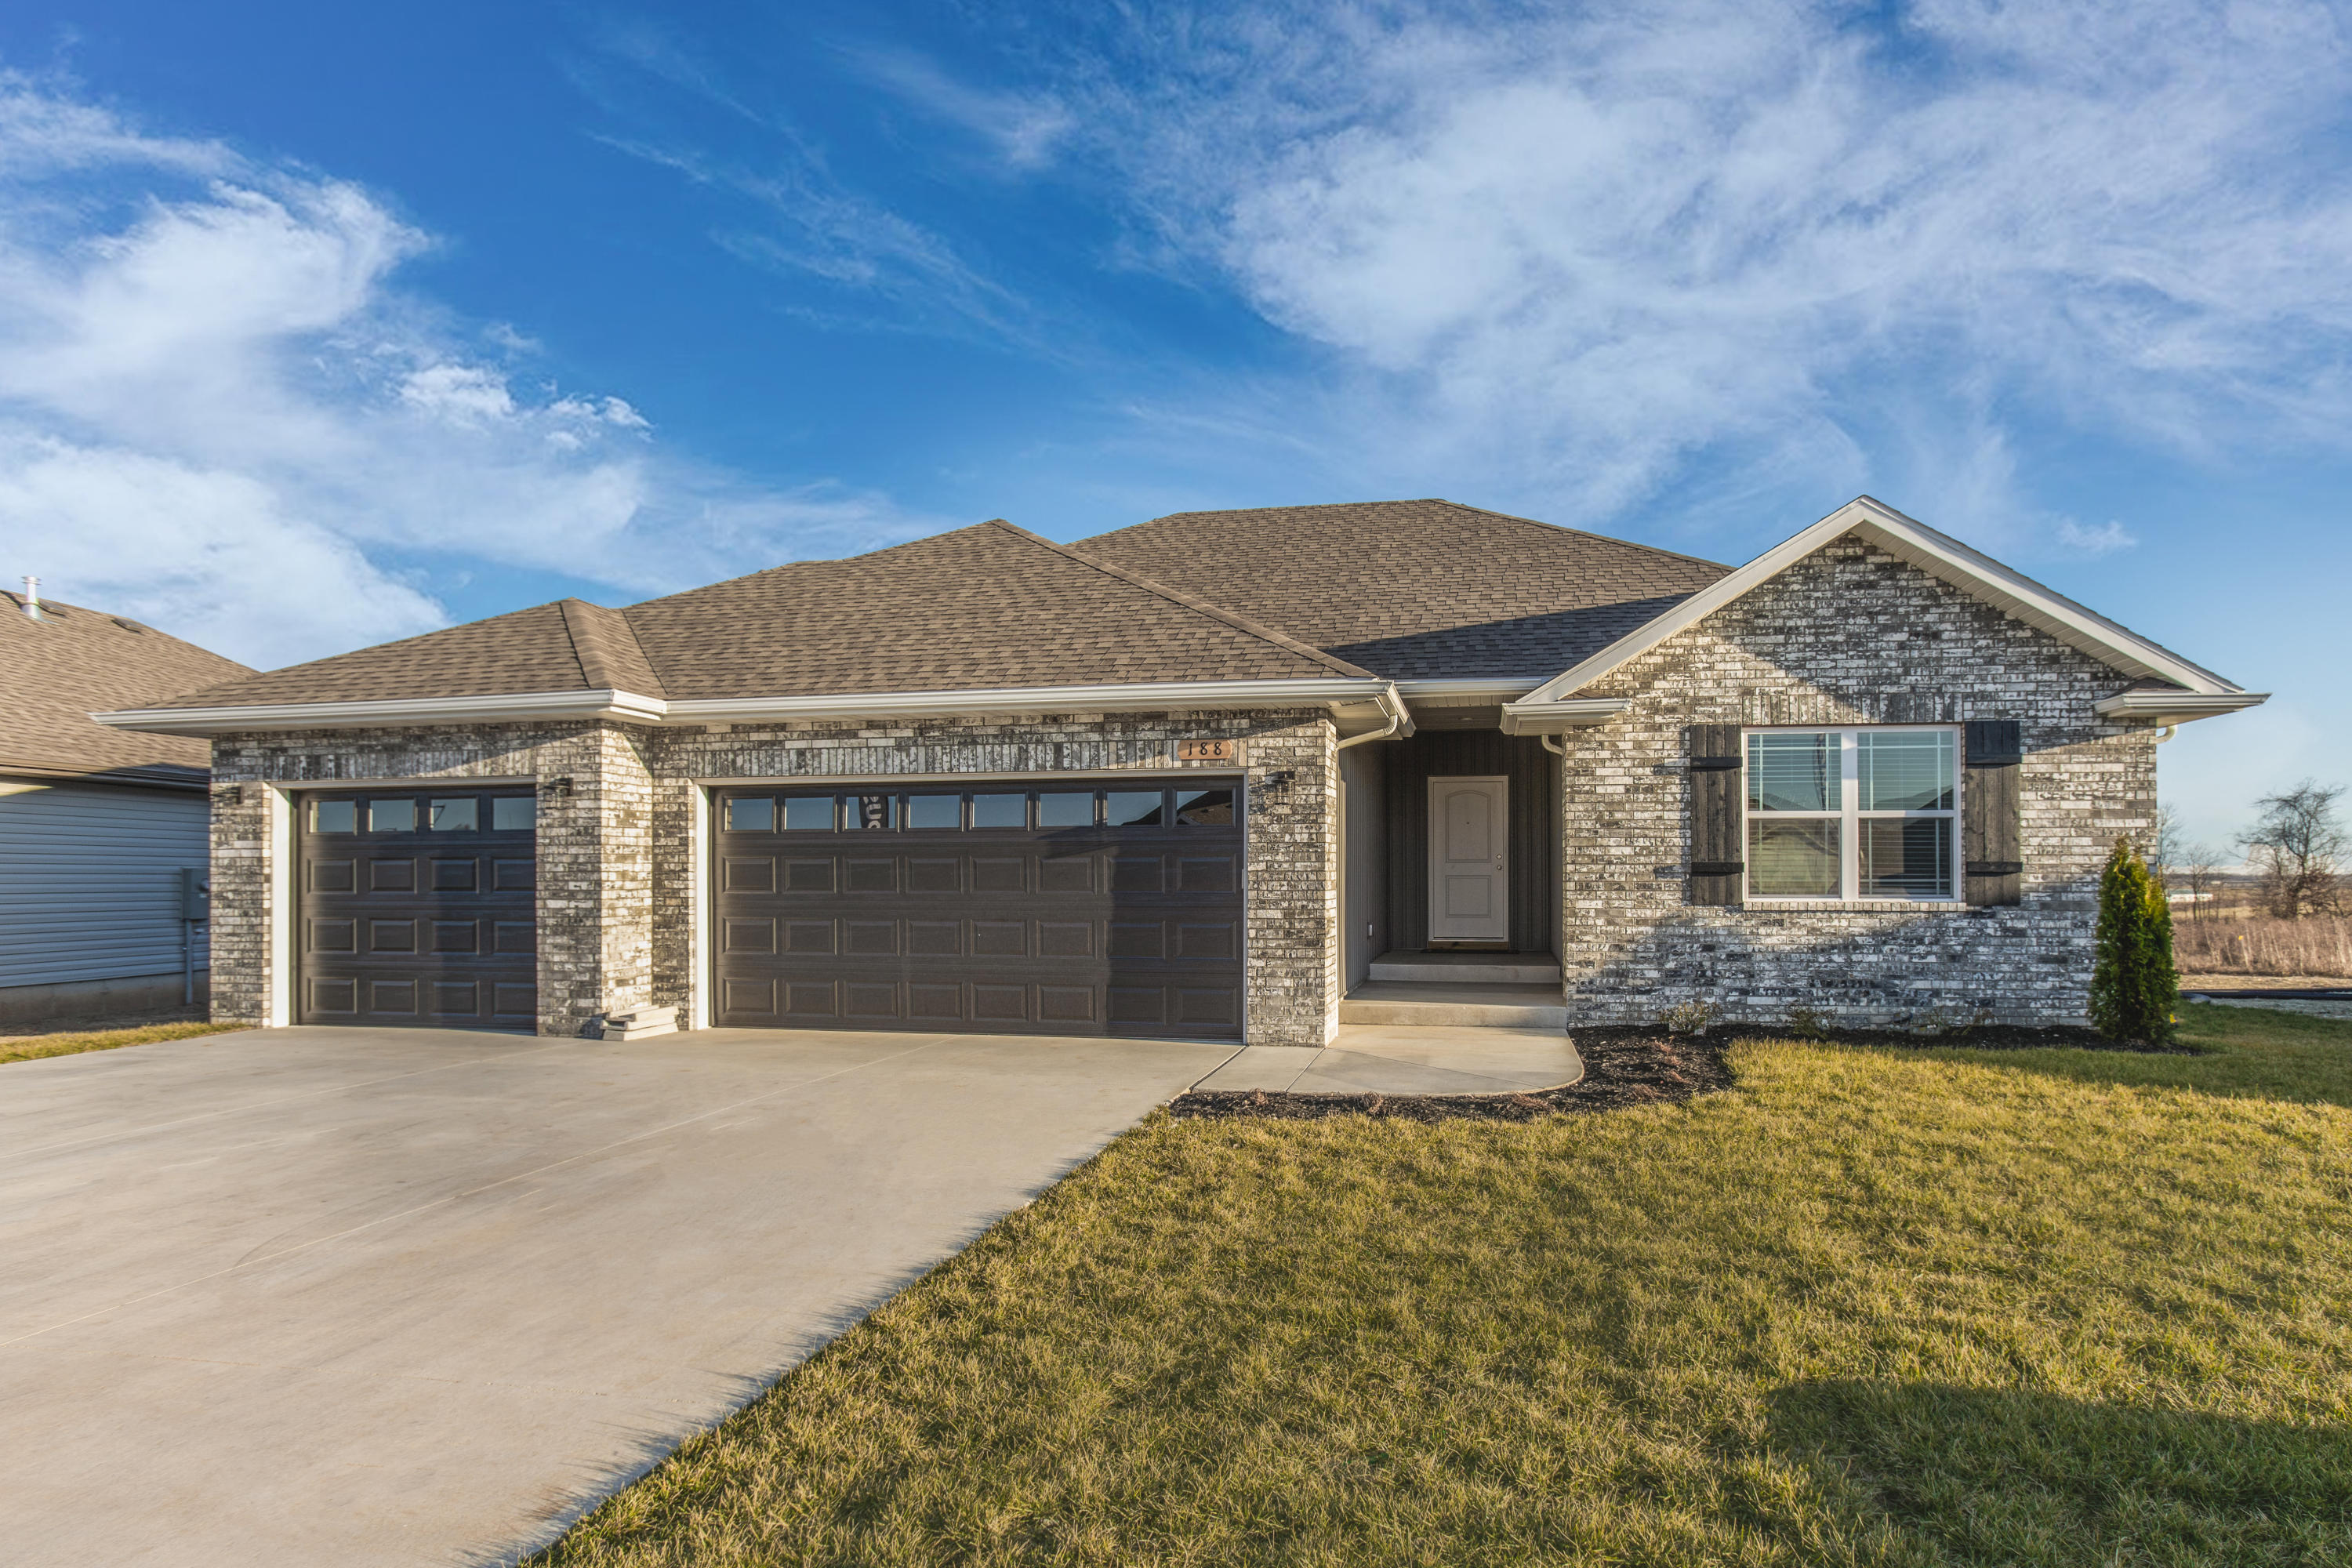 188 West Picardy Republic, MO 65738